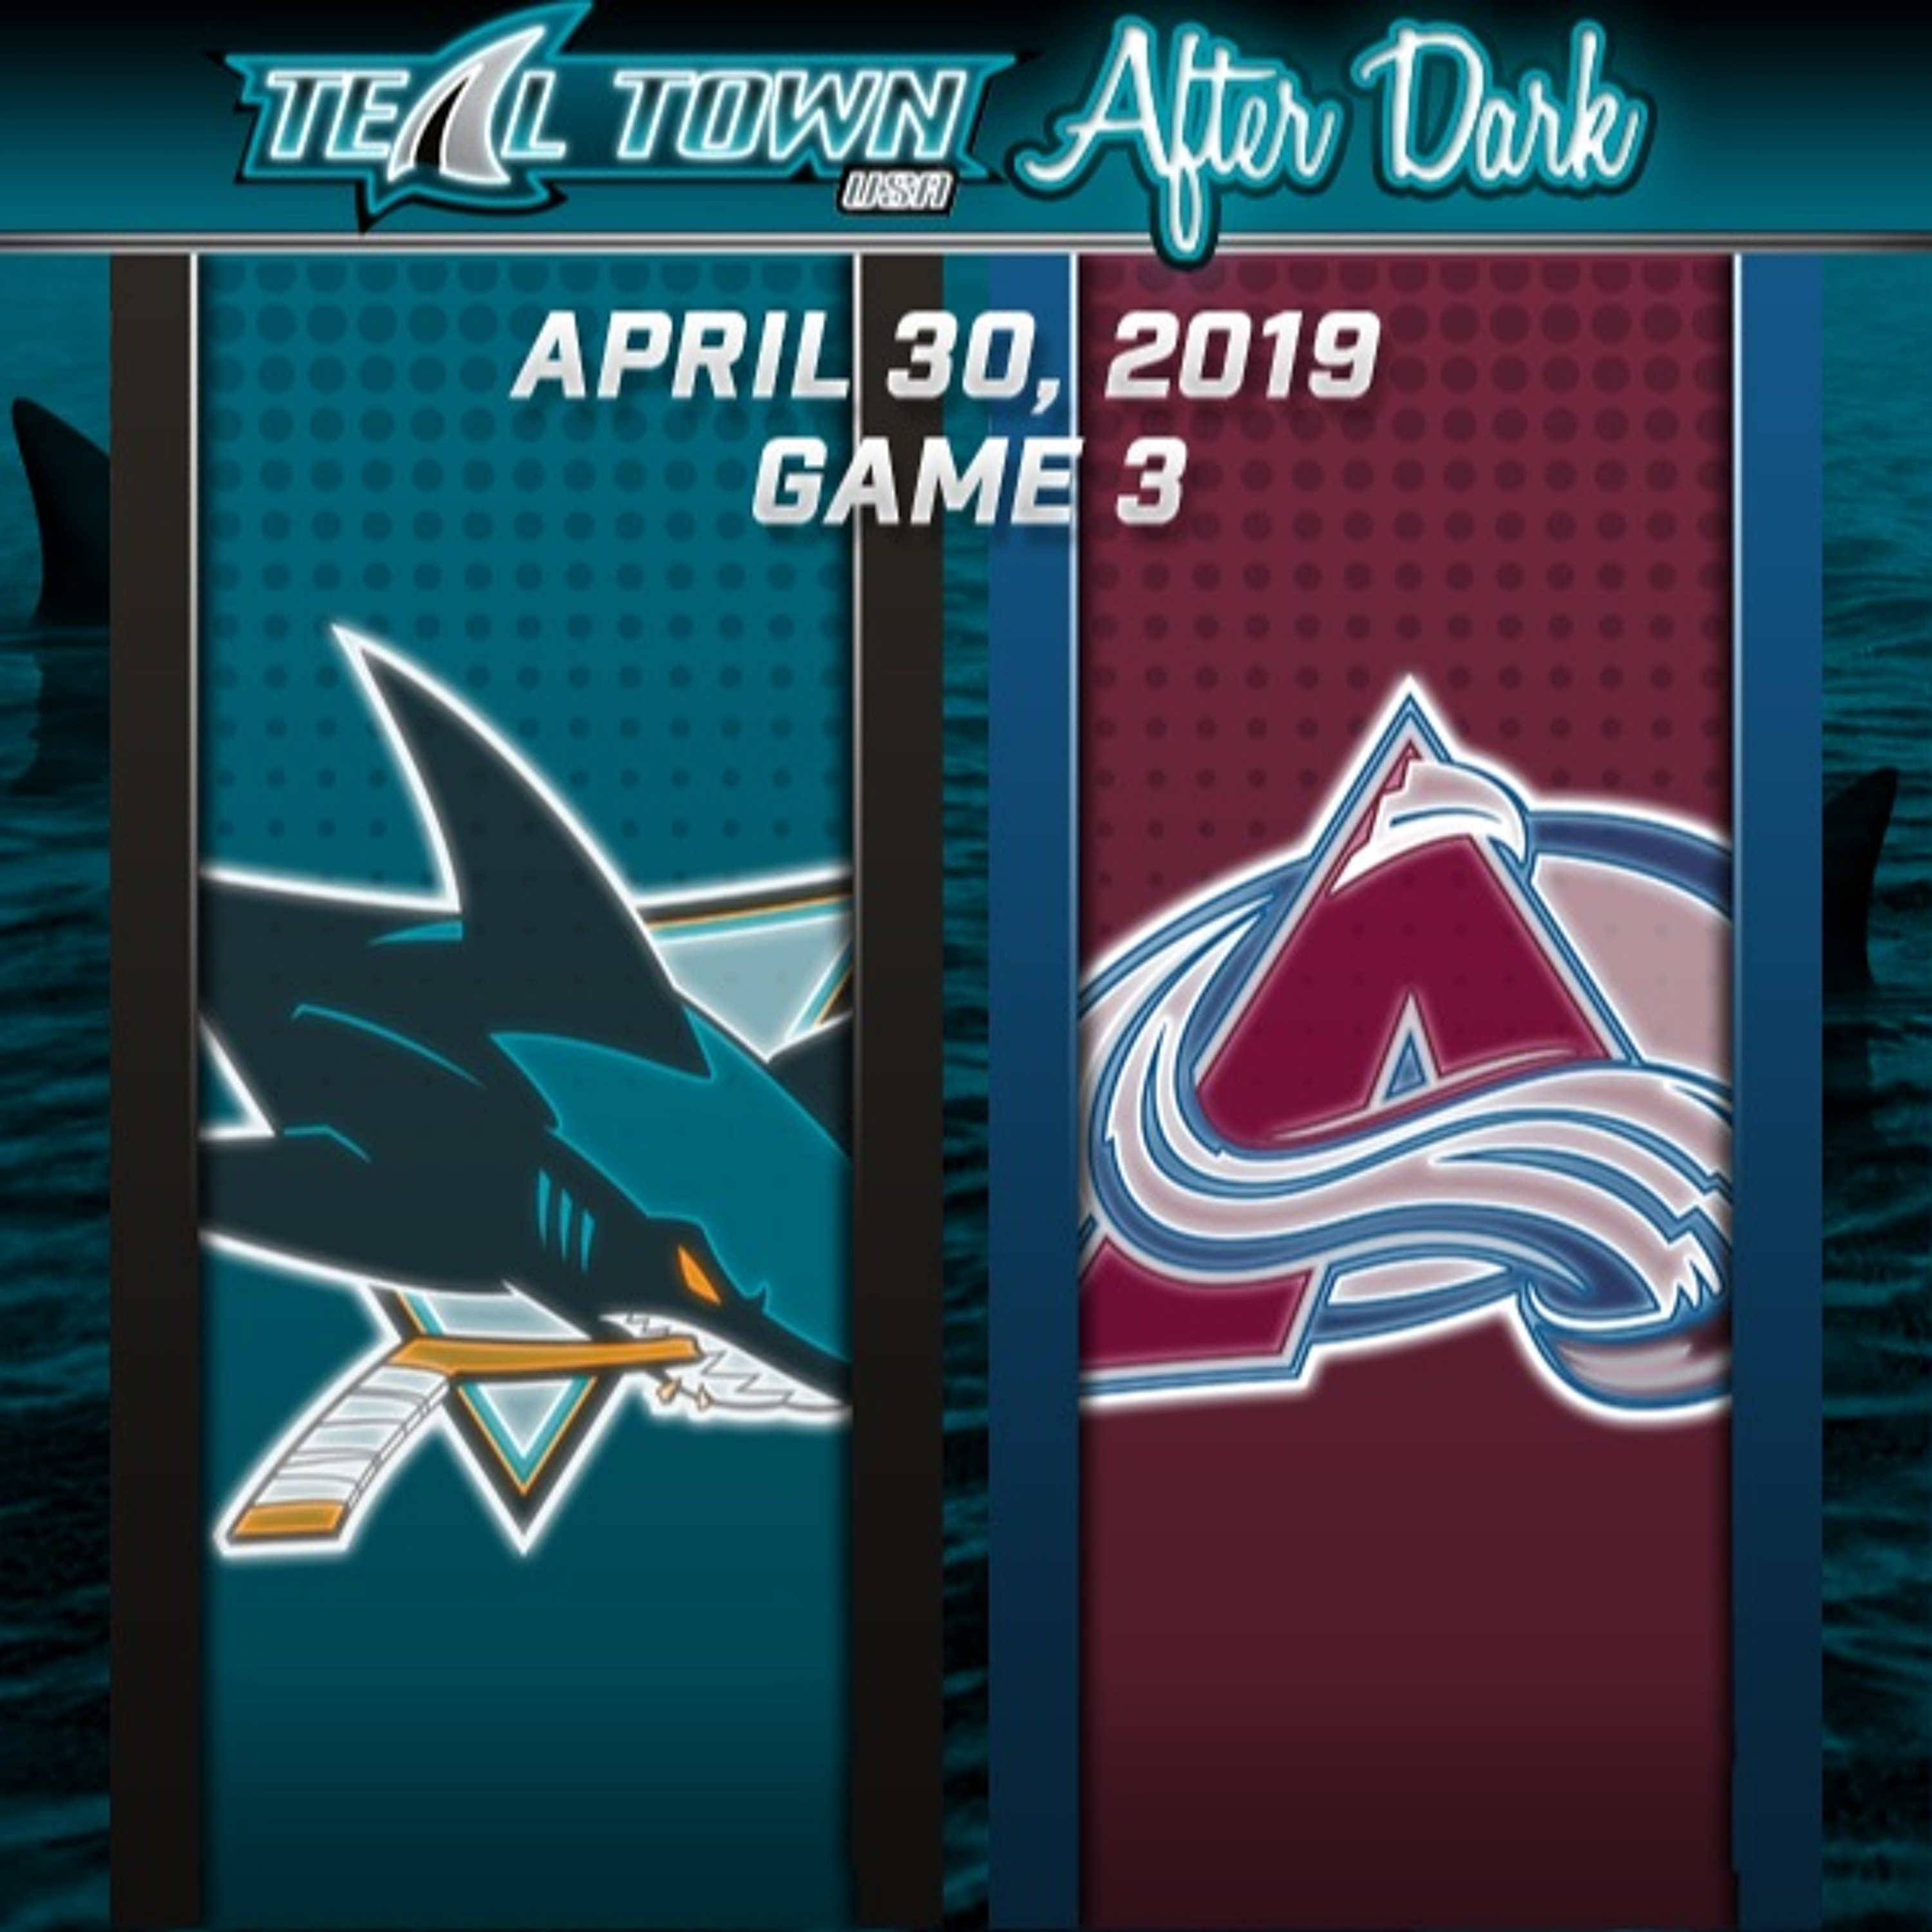 Teal Town USA After Dark (Postgame) - San Jose Sharks @ Colorado Avalanche GAME 3 - 4-30-2019